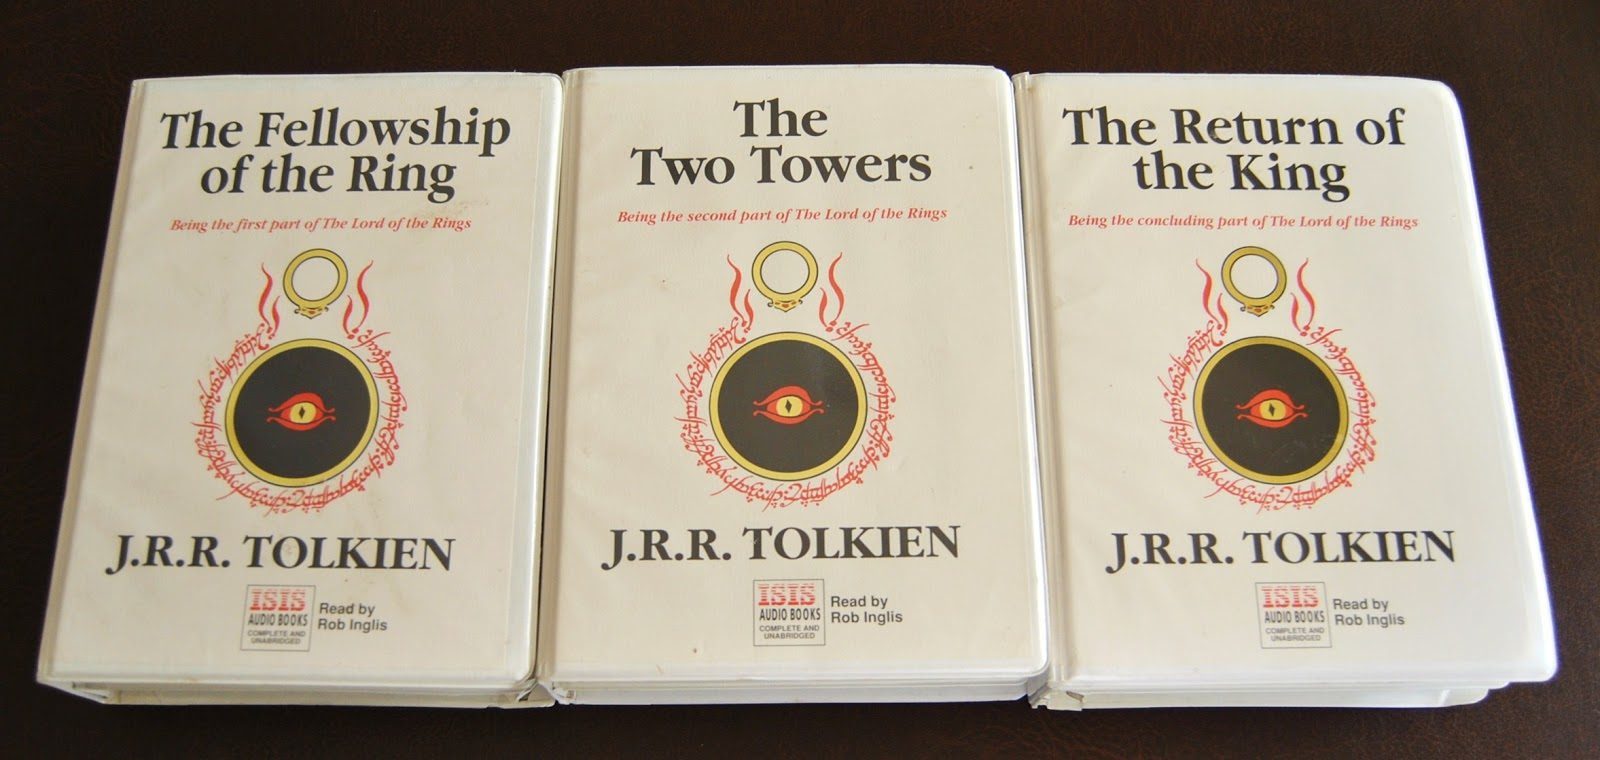 "a striking analysis of the fellowship of the ring by j r r tolkien How gandalf the grey discovered that the ring possessed j r r tolkien the  part 3 - the return of the king"" by j r r tolkien 2  data analysis with r ."